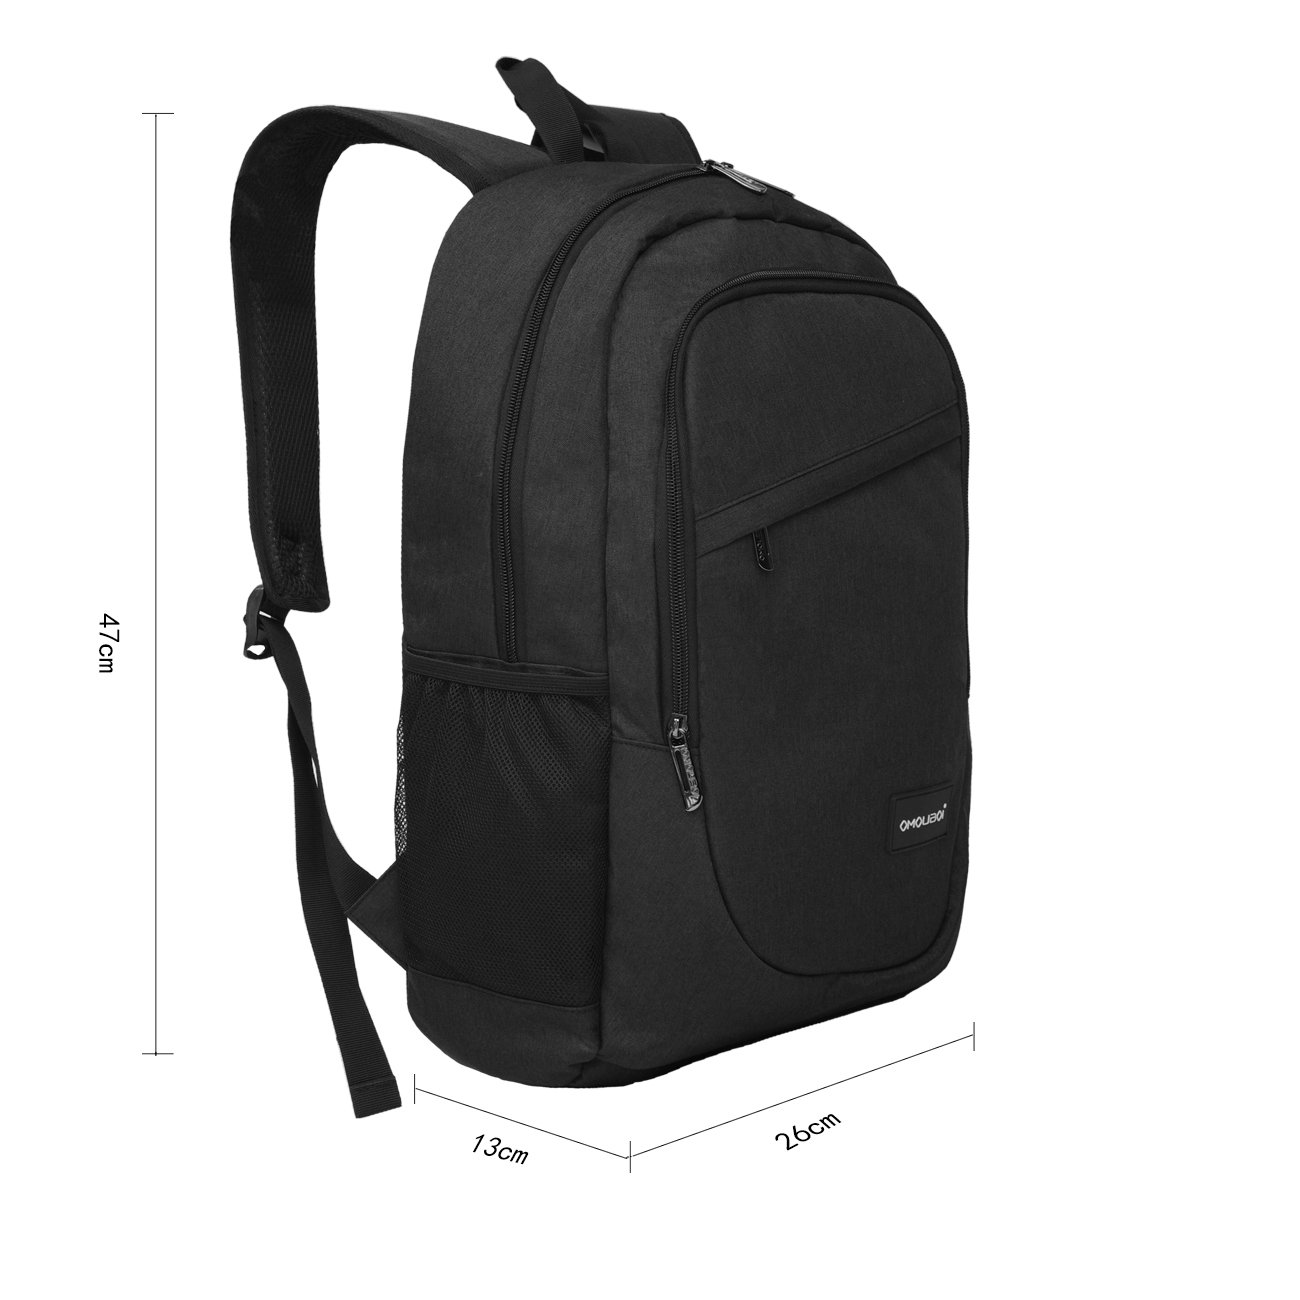 OMOUBOI Business Laptop Water Resistant Anti-Theft College Backpack with USB Charging Port 15.6 Inch Computer Backpacks